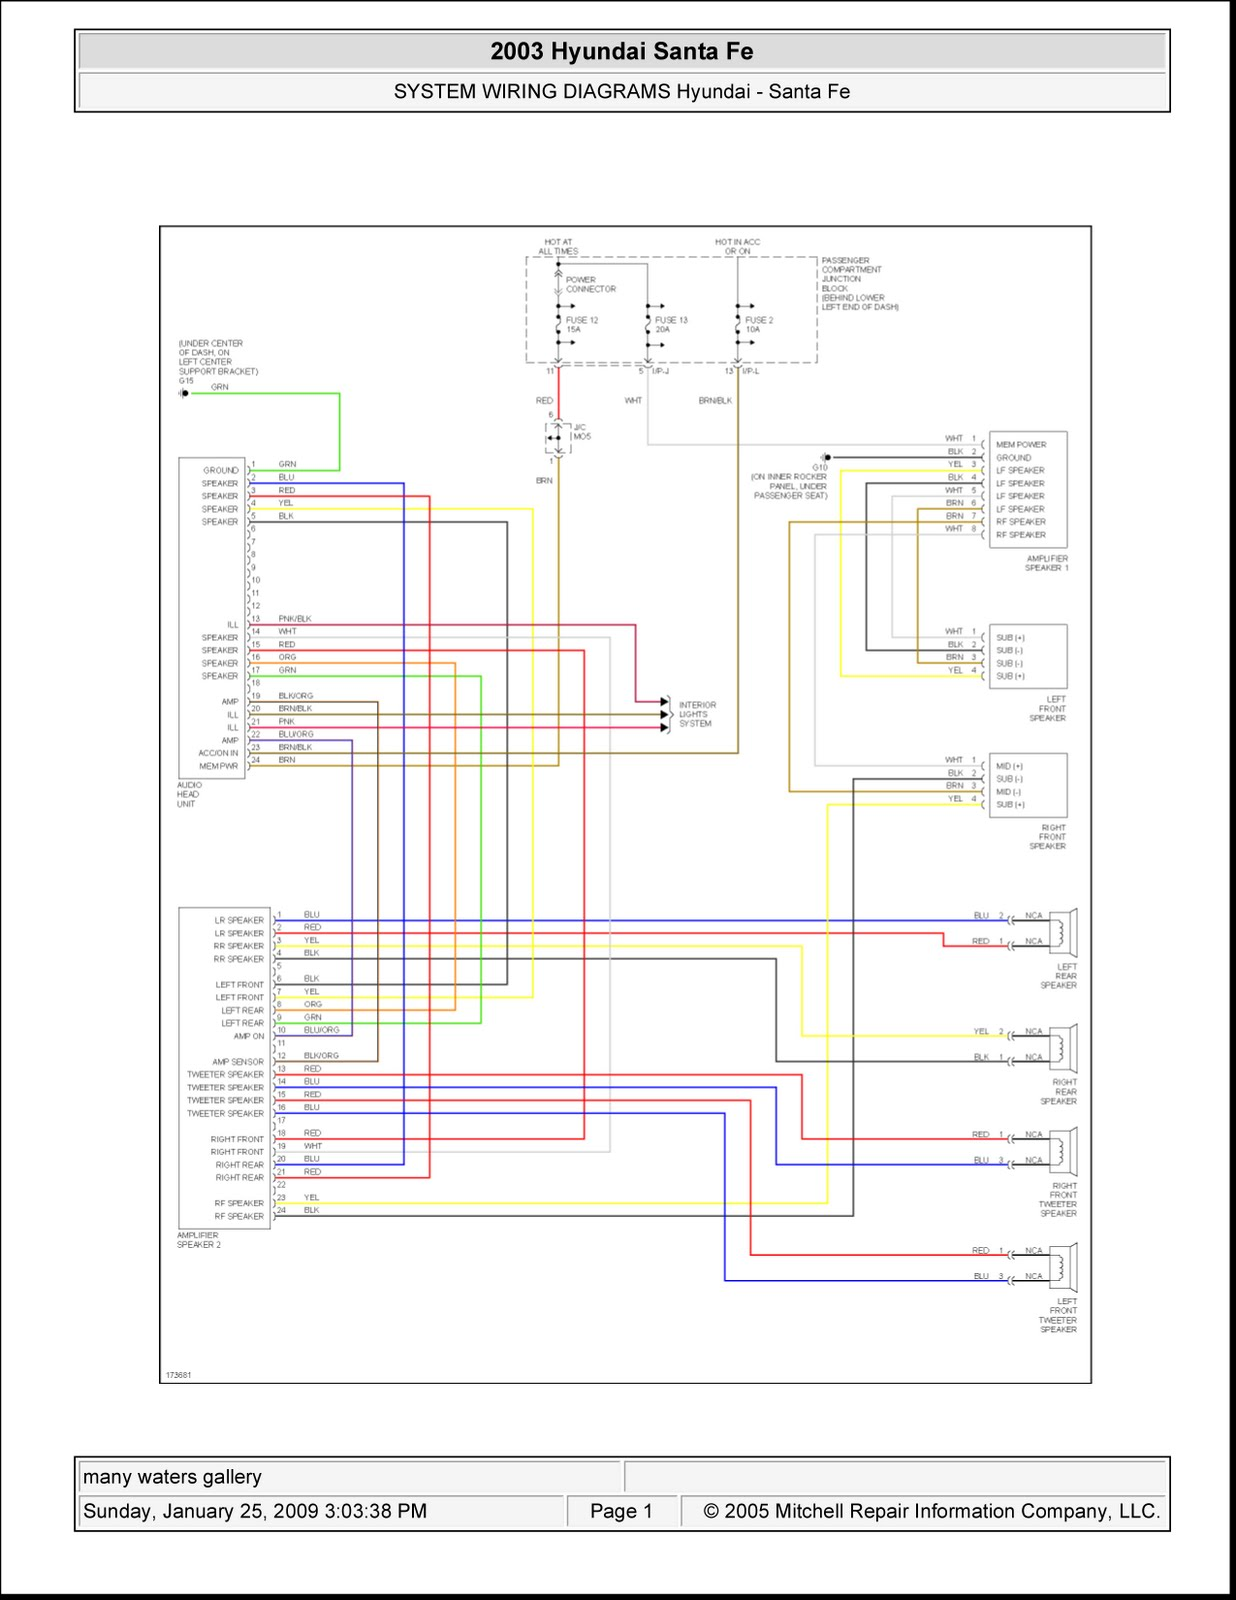 2002 hyundai accent gl stereo wiring diagram data flow for employee management system santa fe monsoon get free image